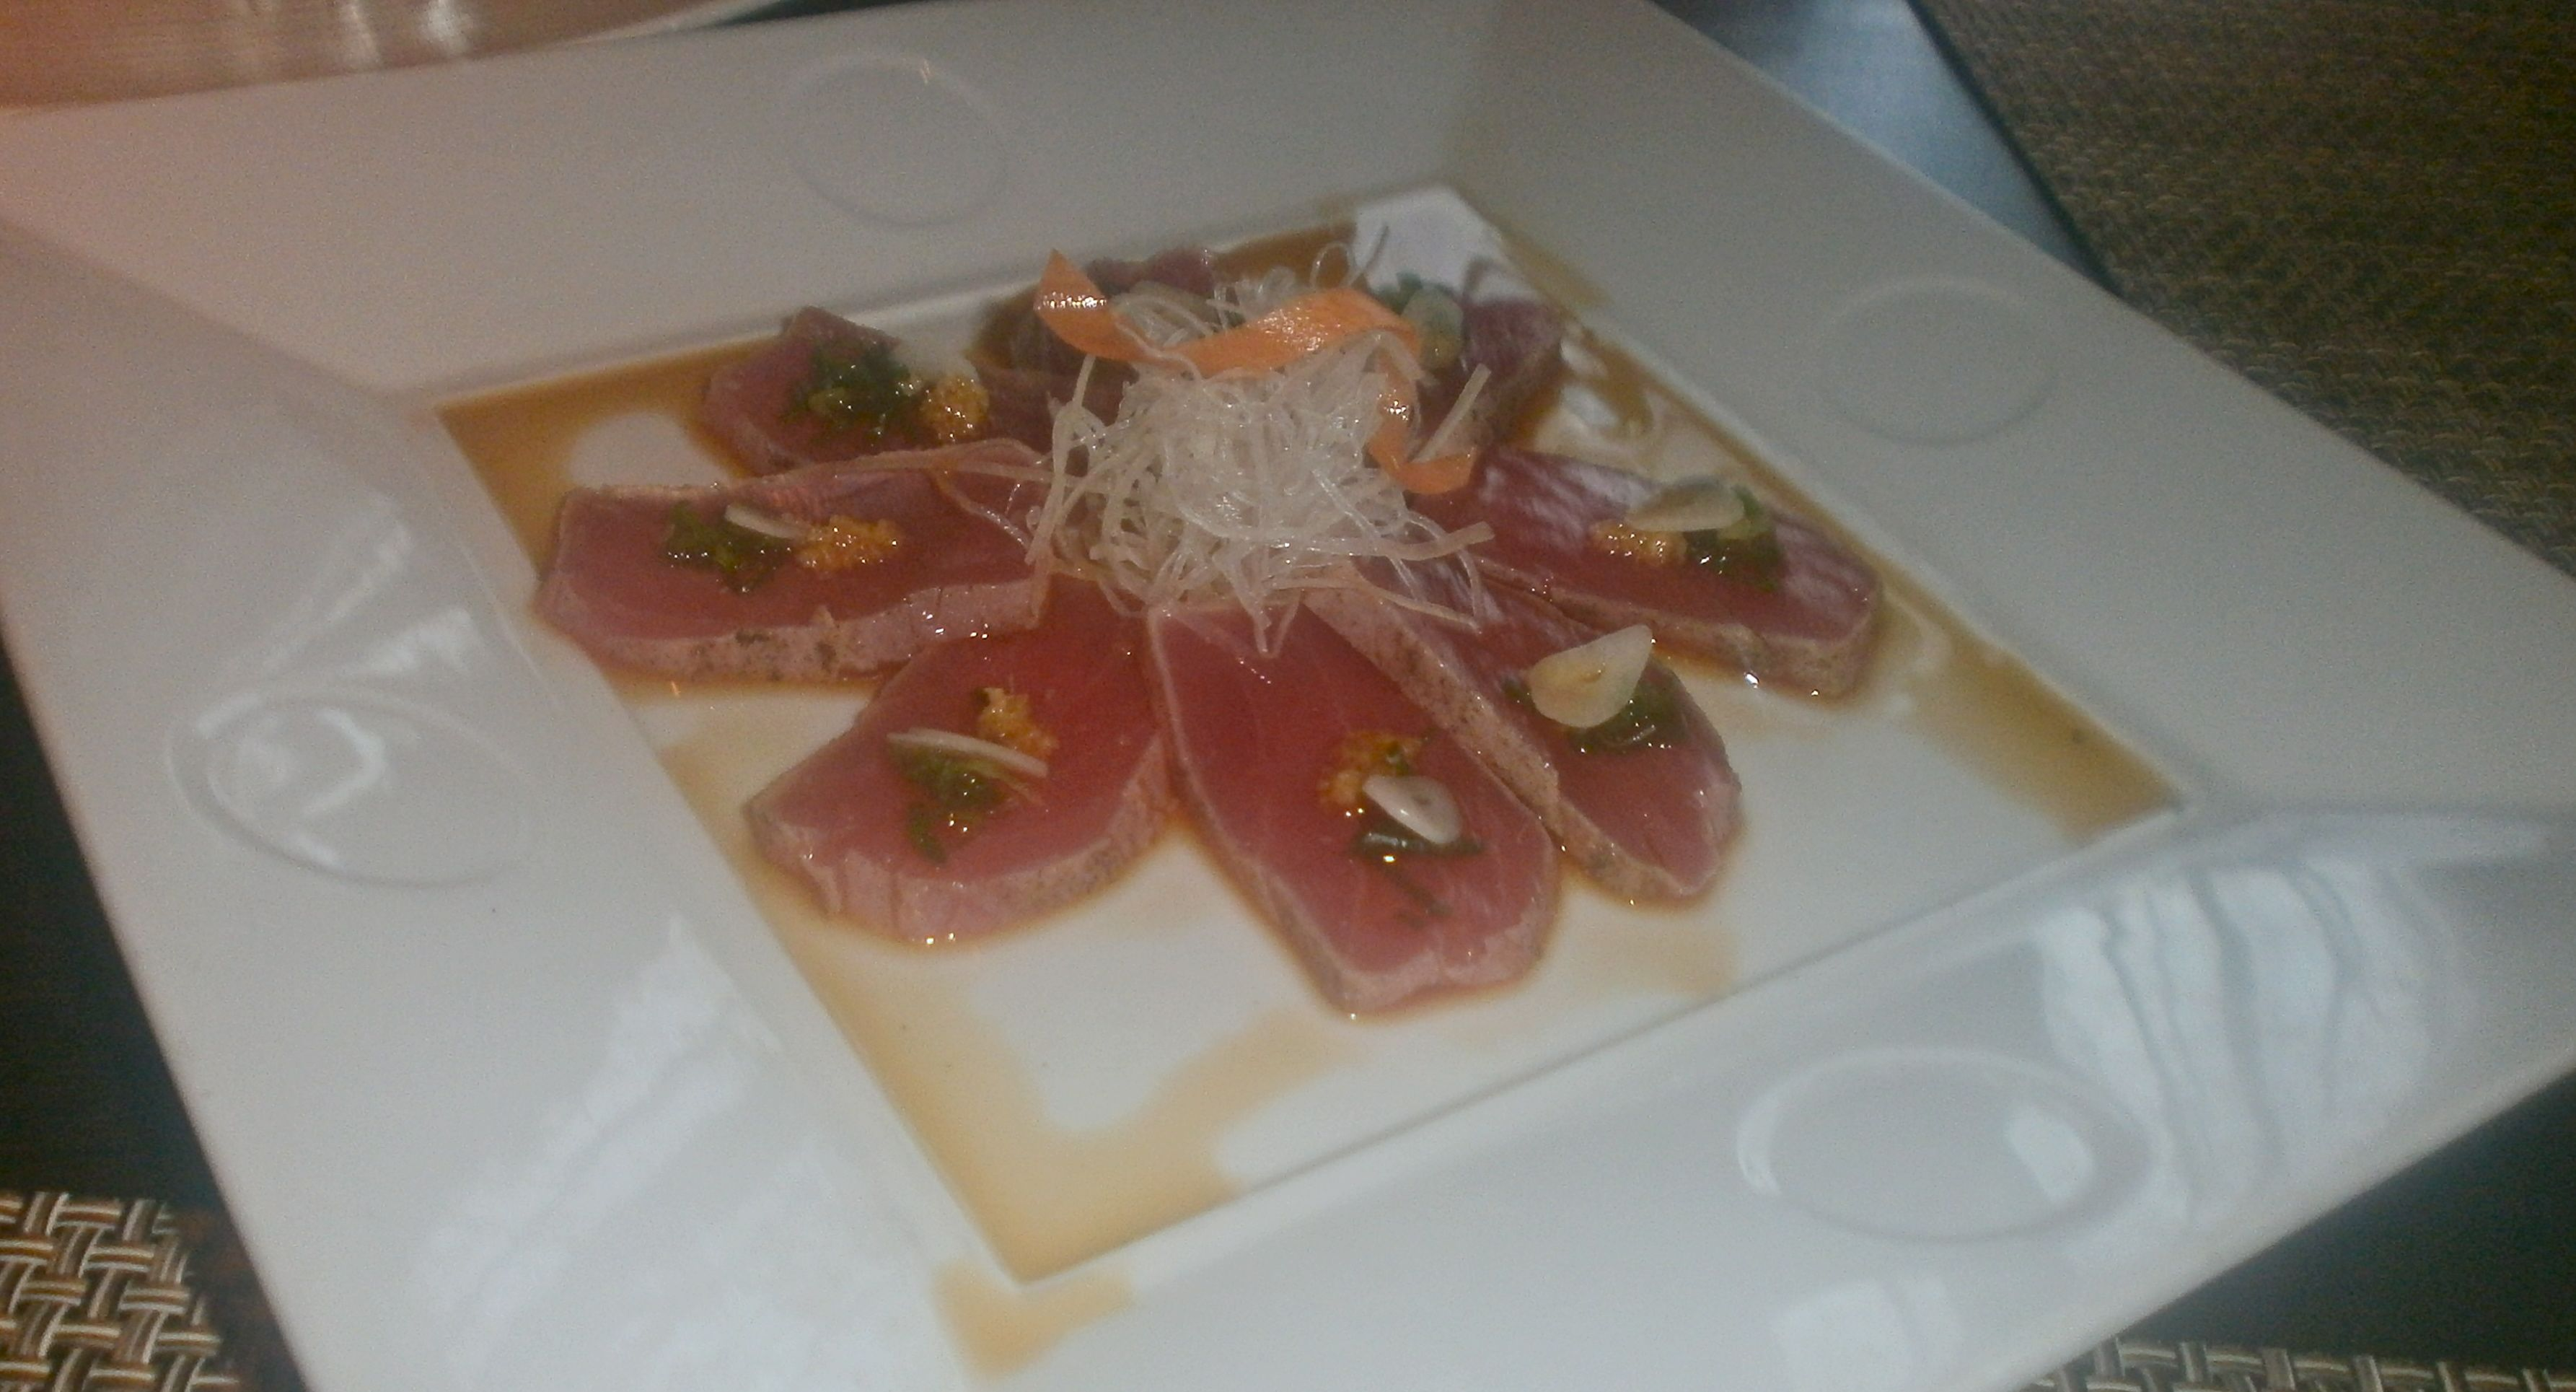 Amazing seared tuna Nobu-style